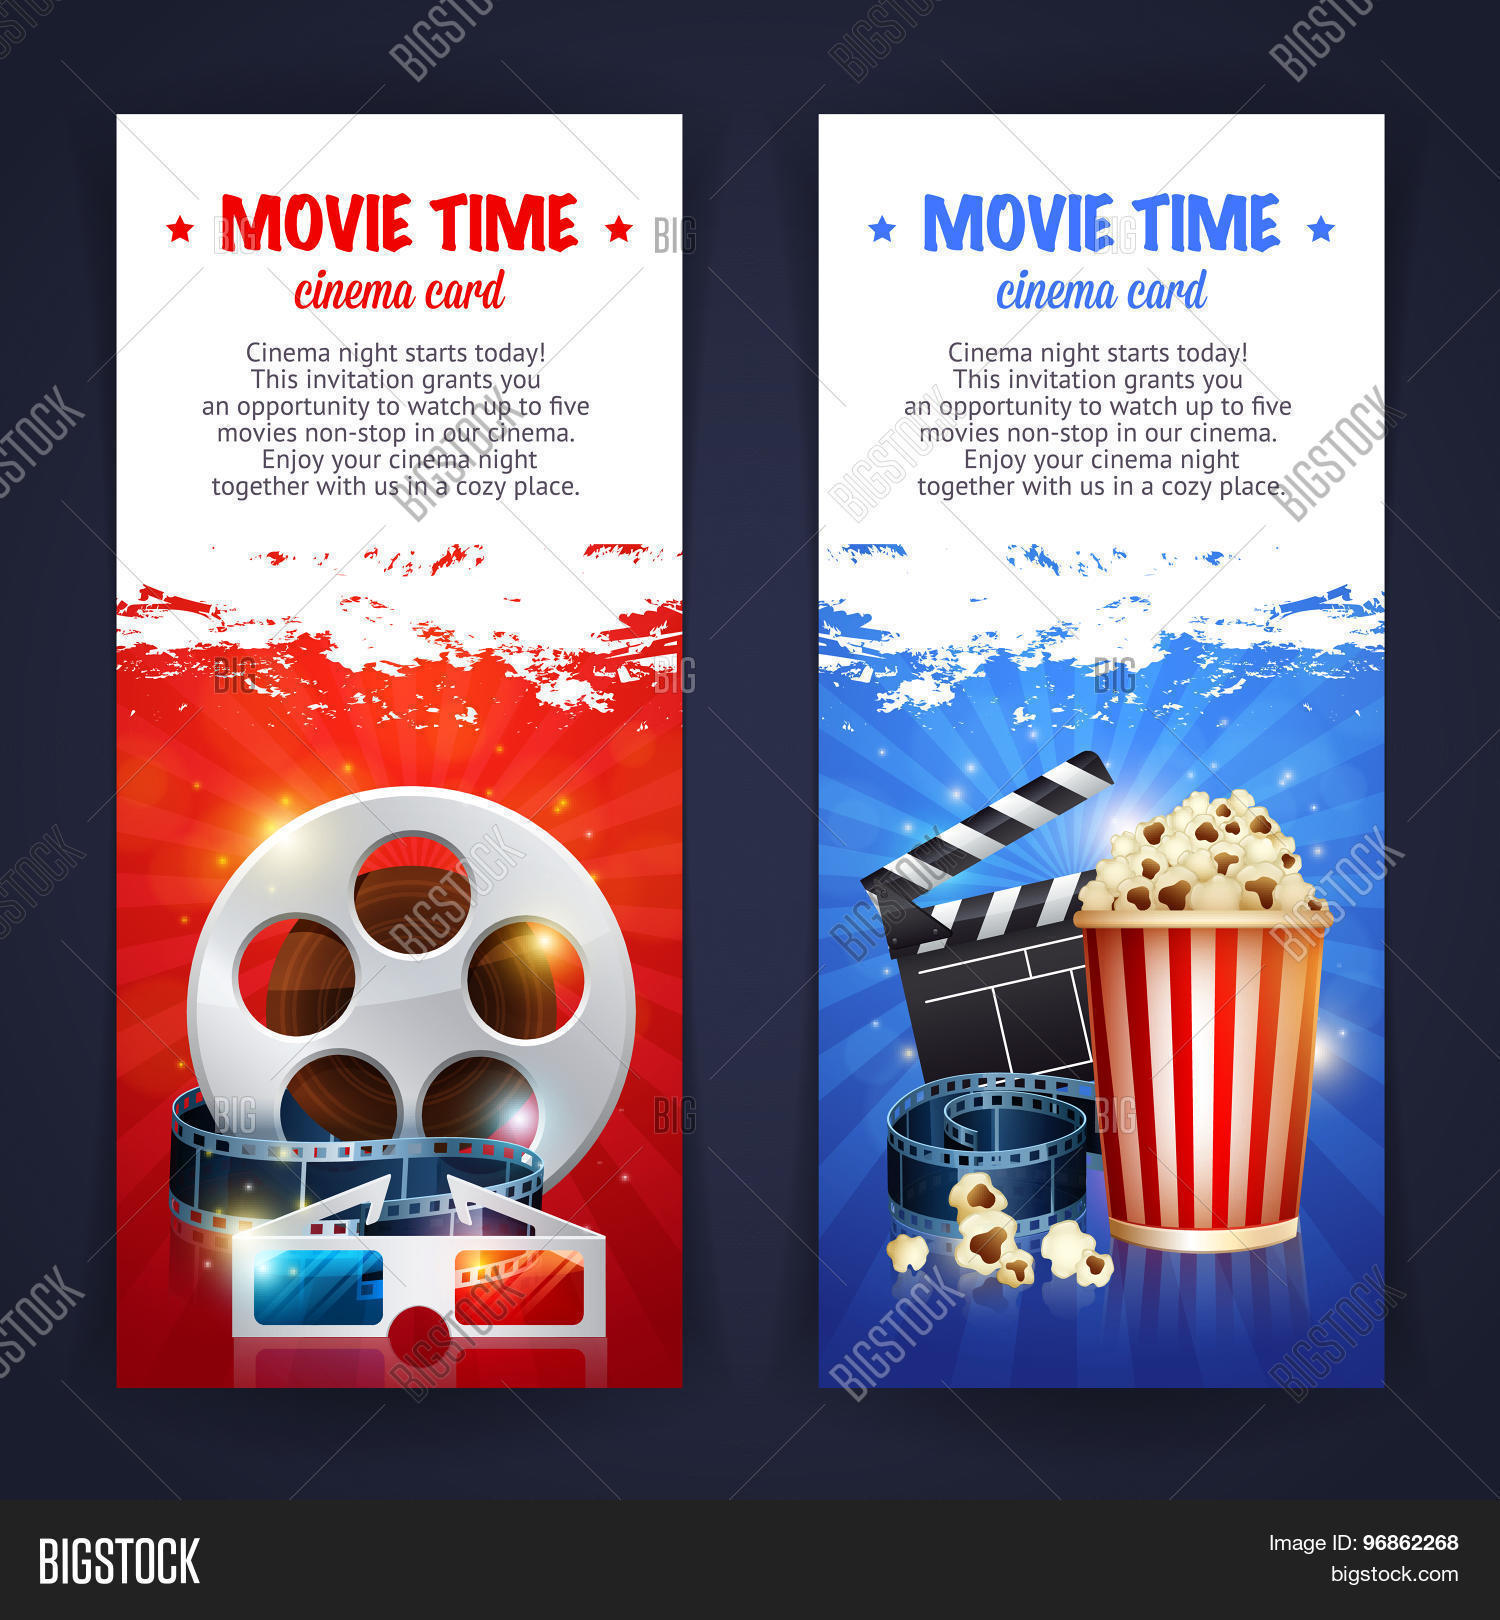 Realistic Cinema Vector Photo Free Trial Bigstock